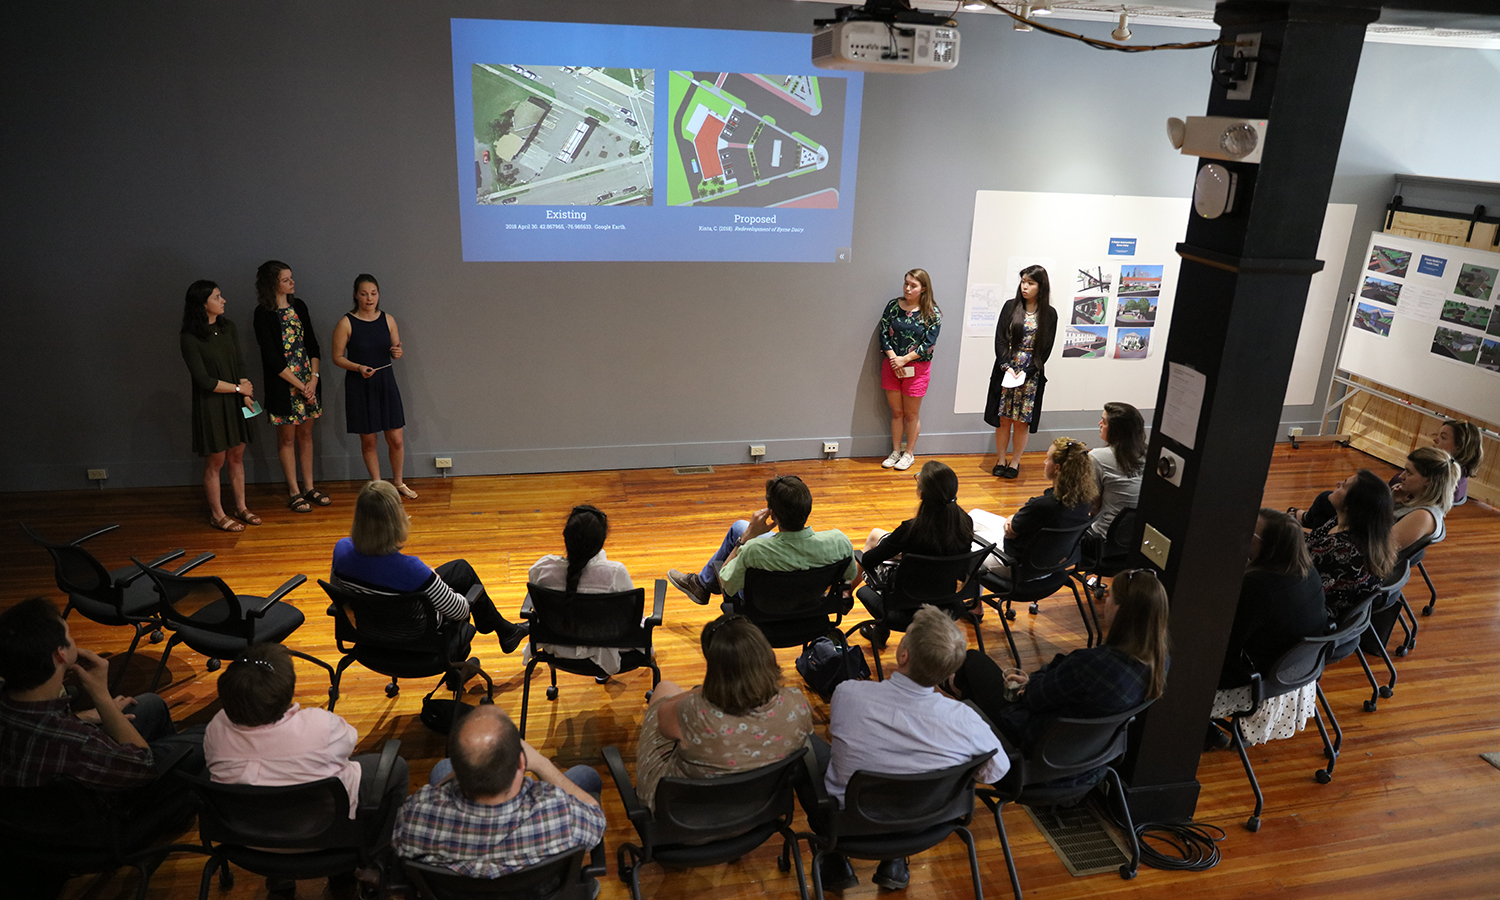 At the Bozzuto Center for Entrepreneurship, students present a sustainability plan for the Castle Street Corridor in downtown Geneva as part of their Sustainable Community Development Capstone.